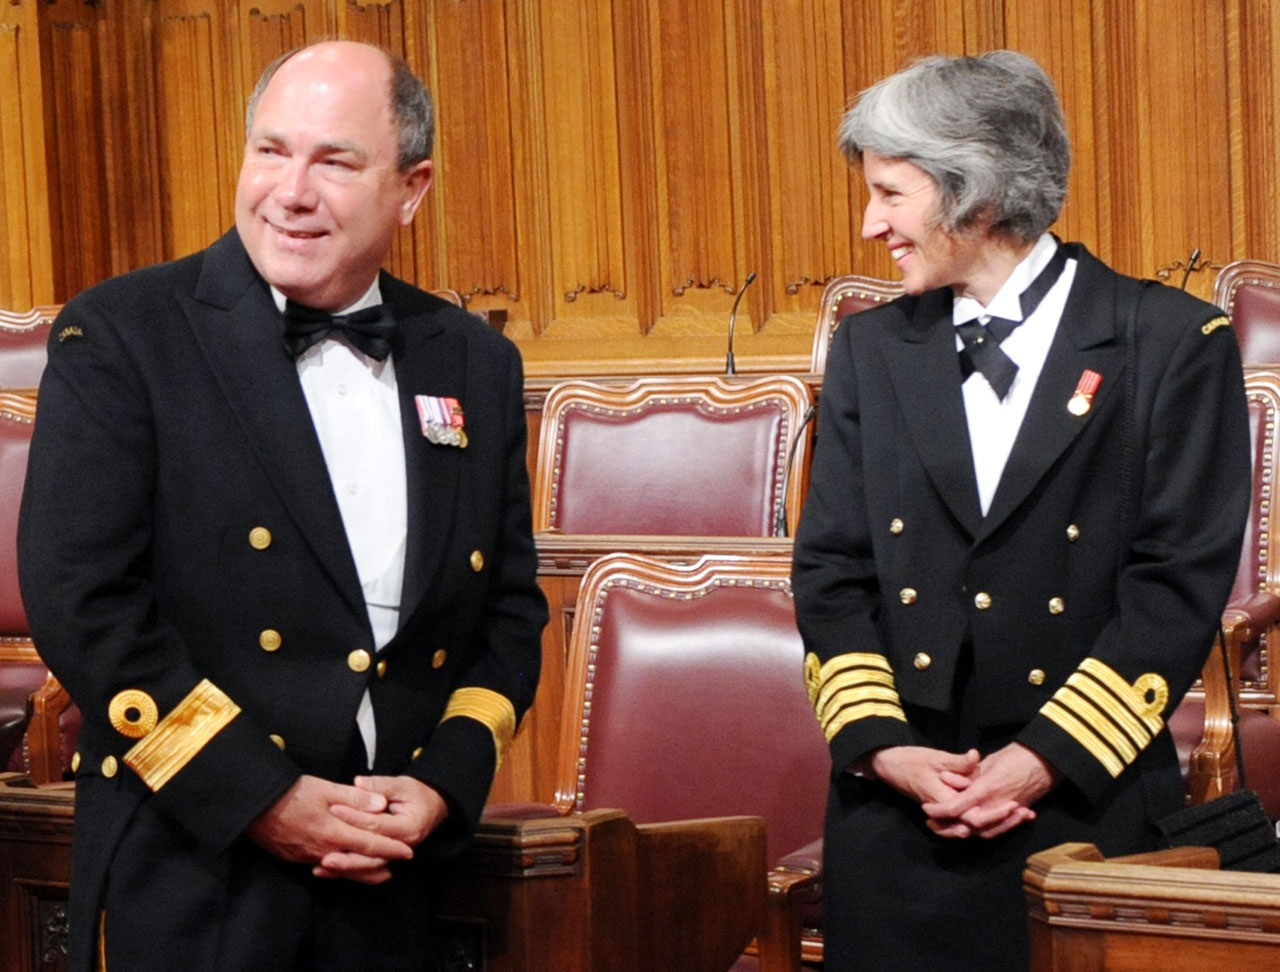 Captain (Navy) Jill Marrack and Commodore David Craig, Commander of the Naval Reserve, visit the Senate Chamber in 2013.  Photo: Dennis Drever